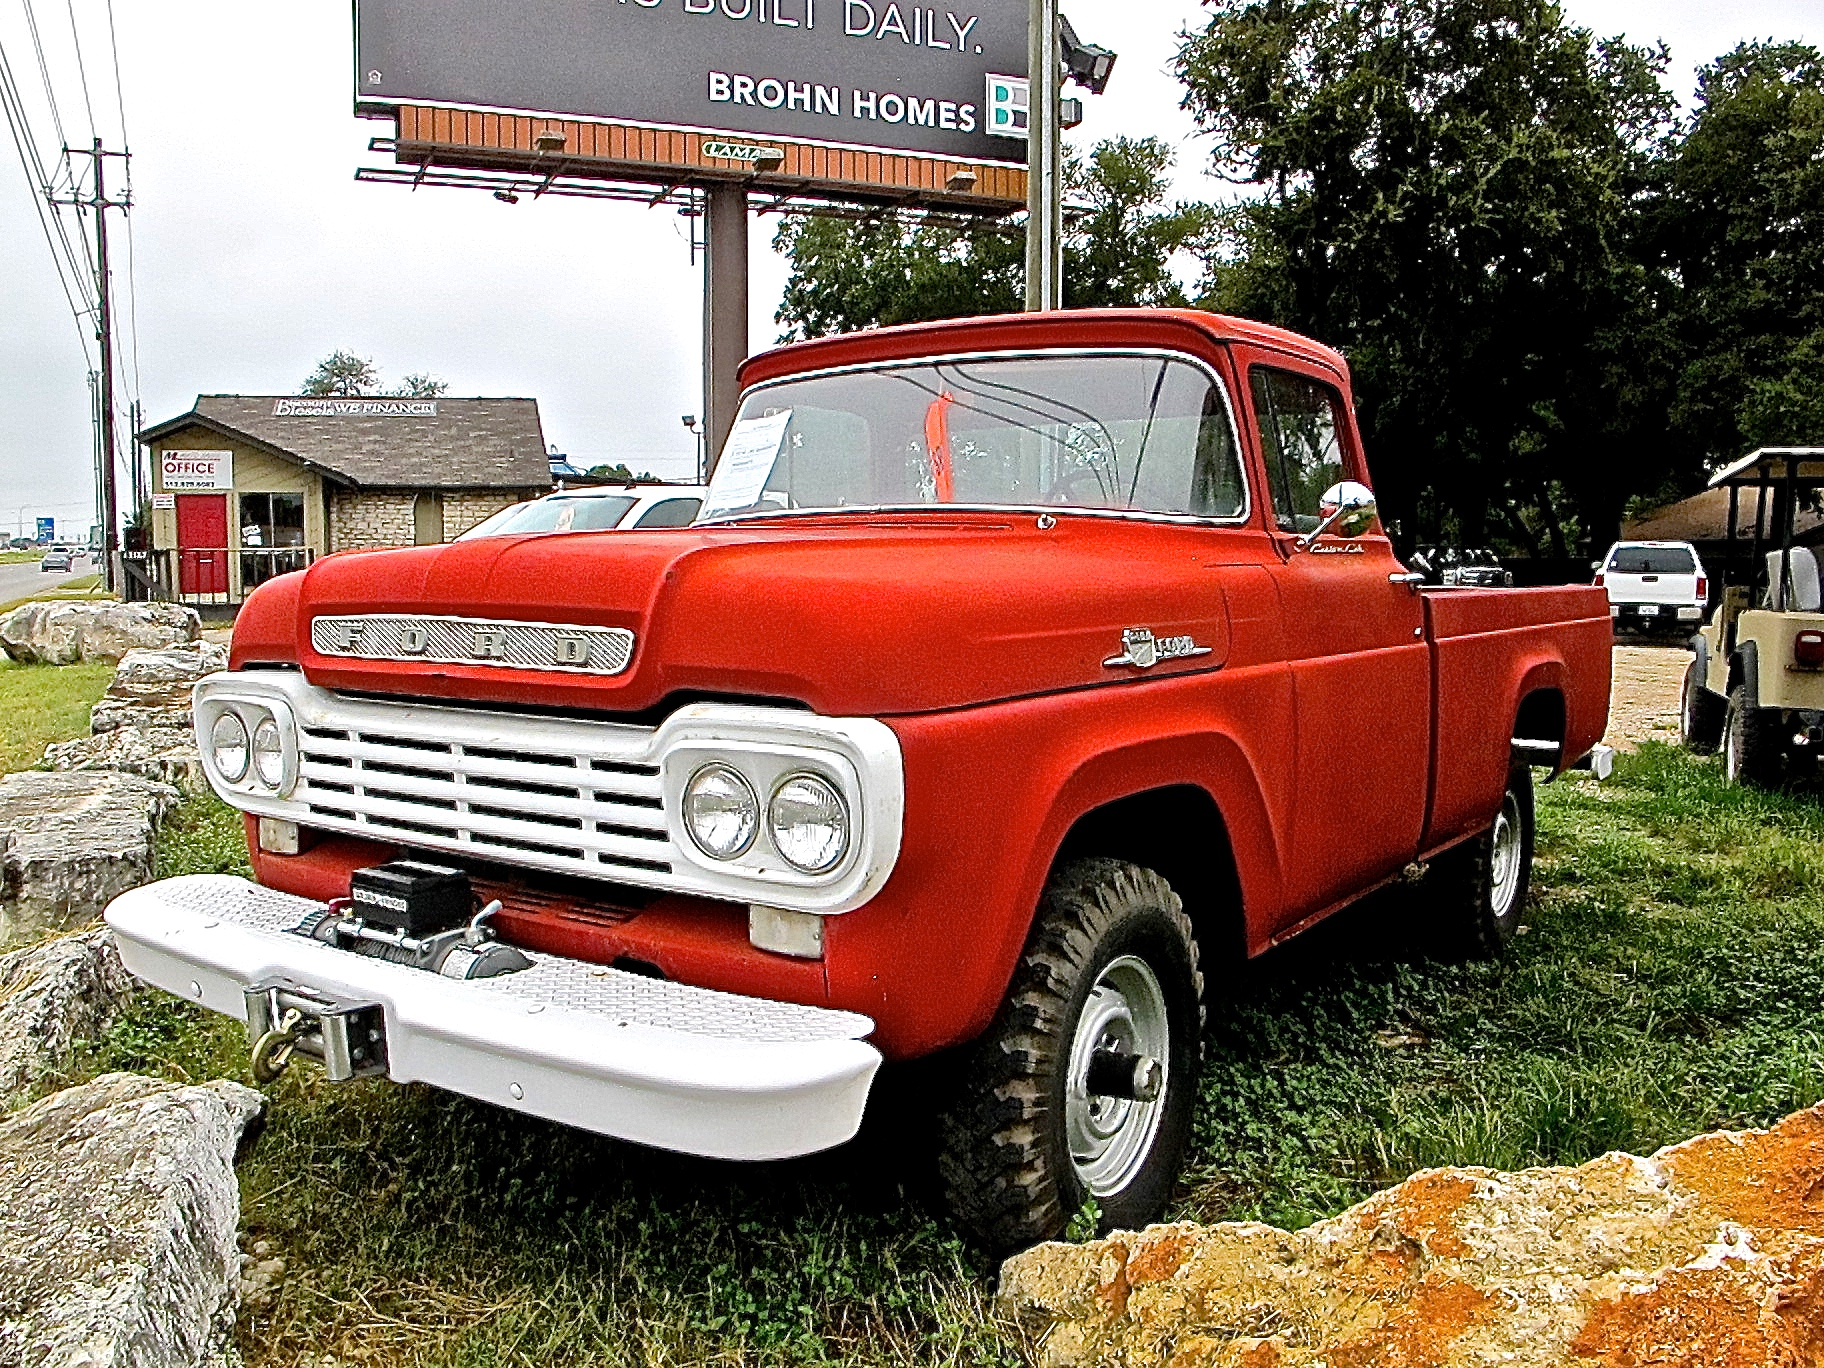 rare 1959 factory 4 4 ford f100 with diesel power atx car pictures real pics from austin tx. Black Bedroom Furniture Sets. Home Design Ideas